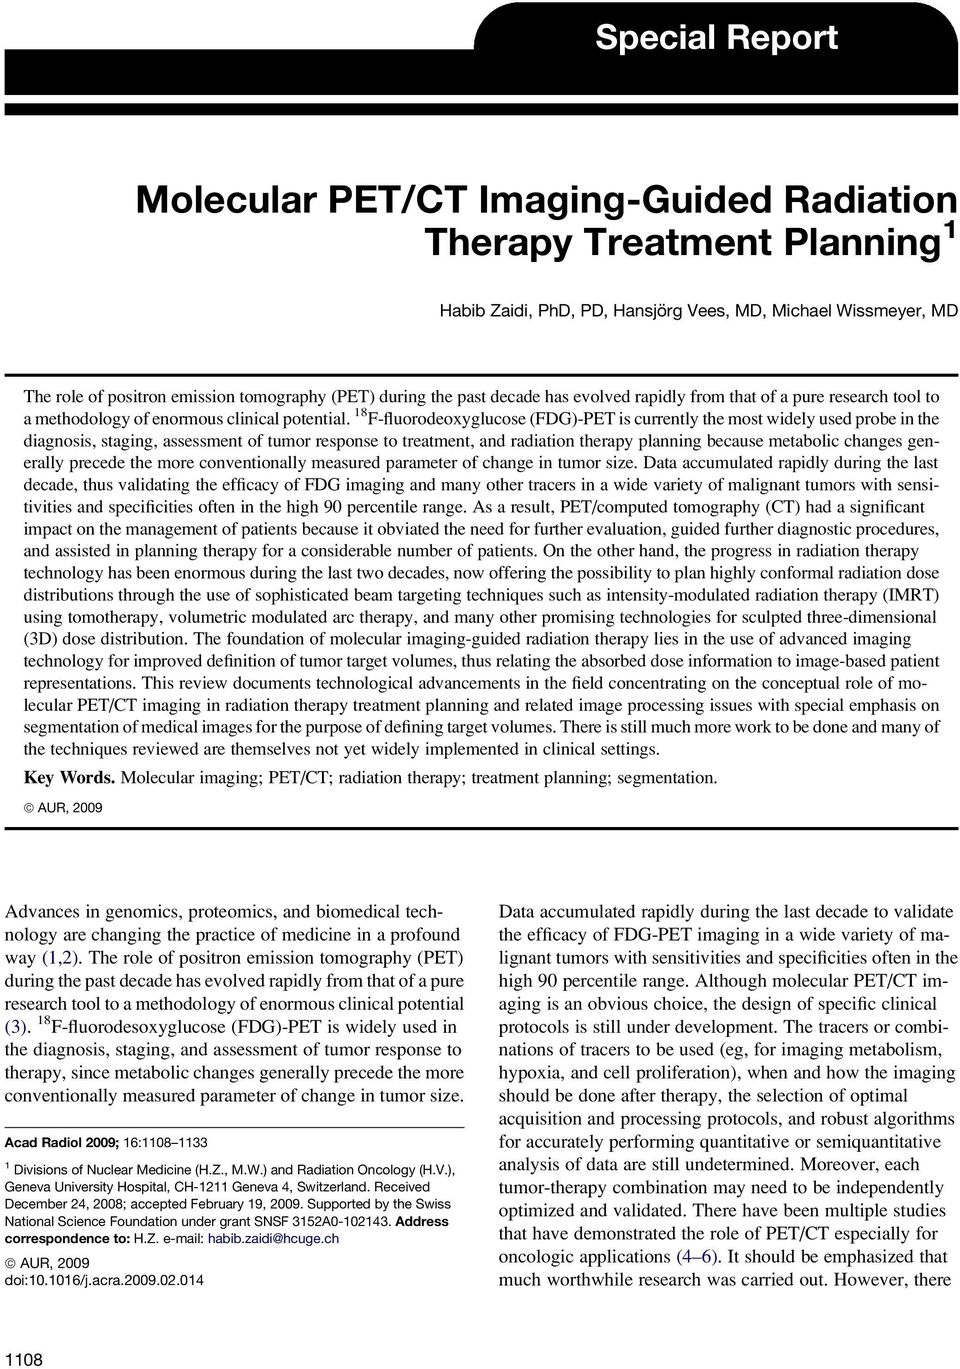 18 F-fluorodeoxyglucose (FDG)-PET is currently the most widely used probe in the diagnosis, staging, assessment of tumor response to treatment, and radiation therapy planning because metabolic